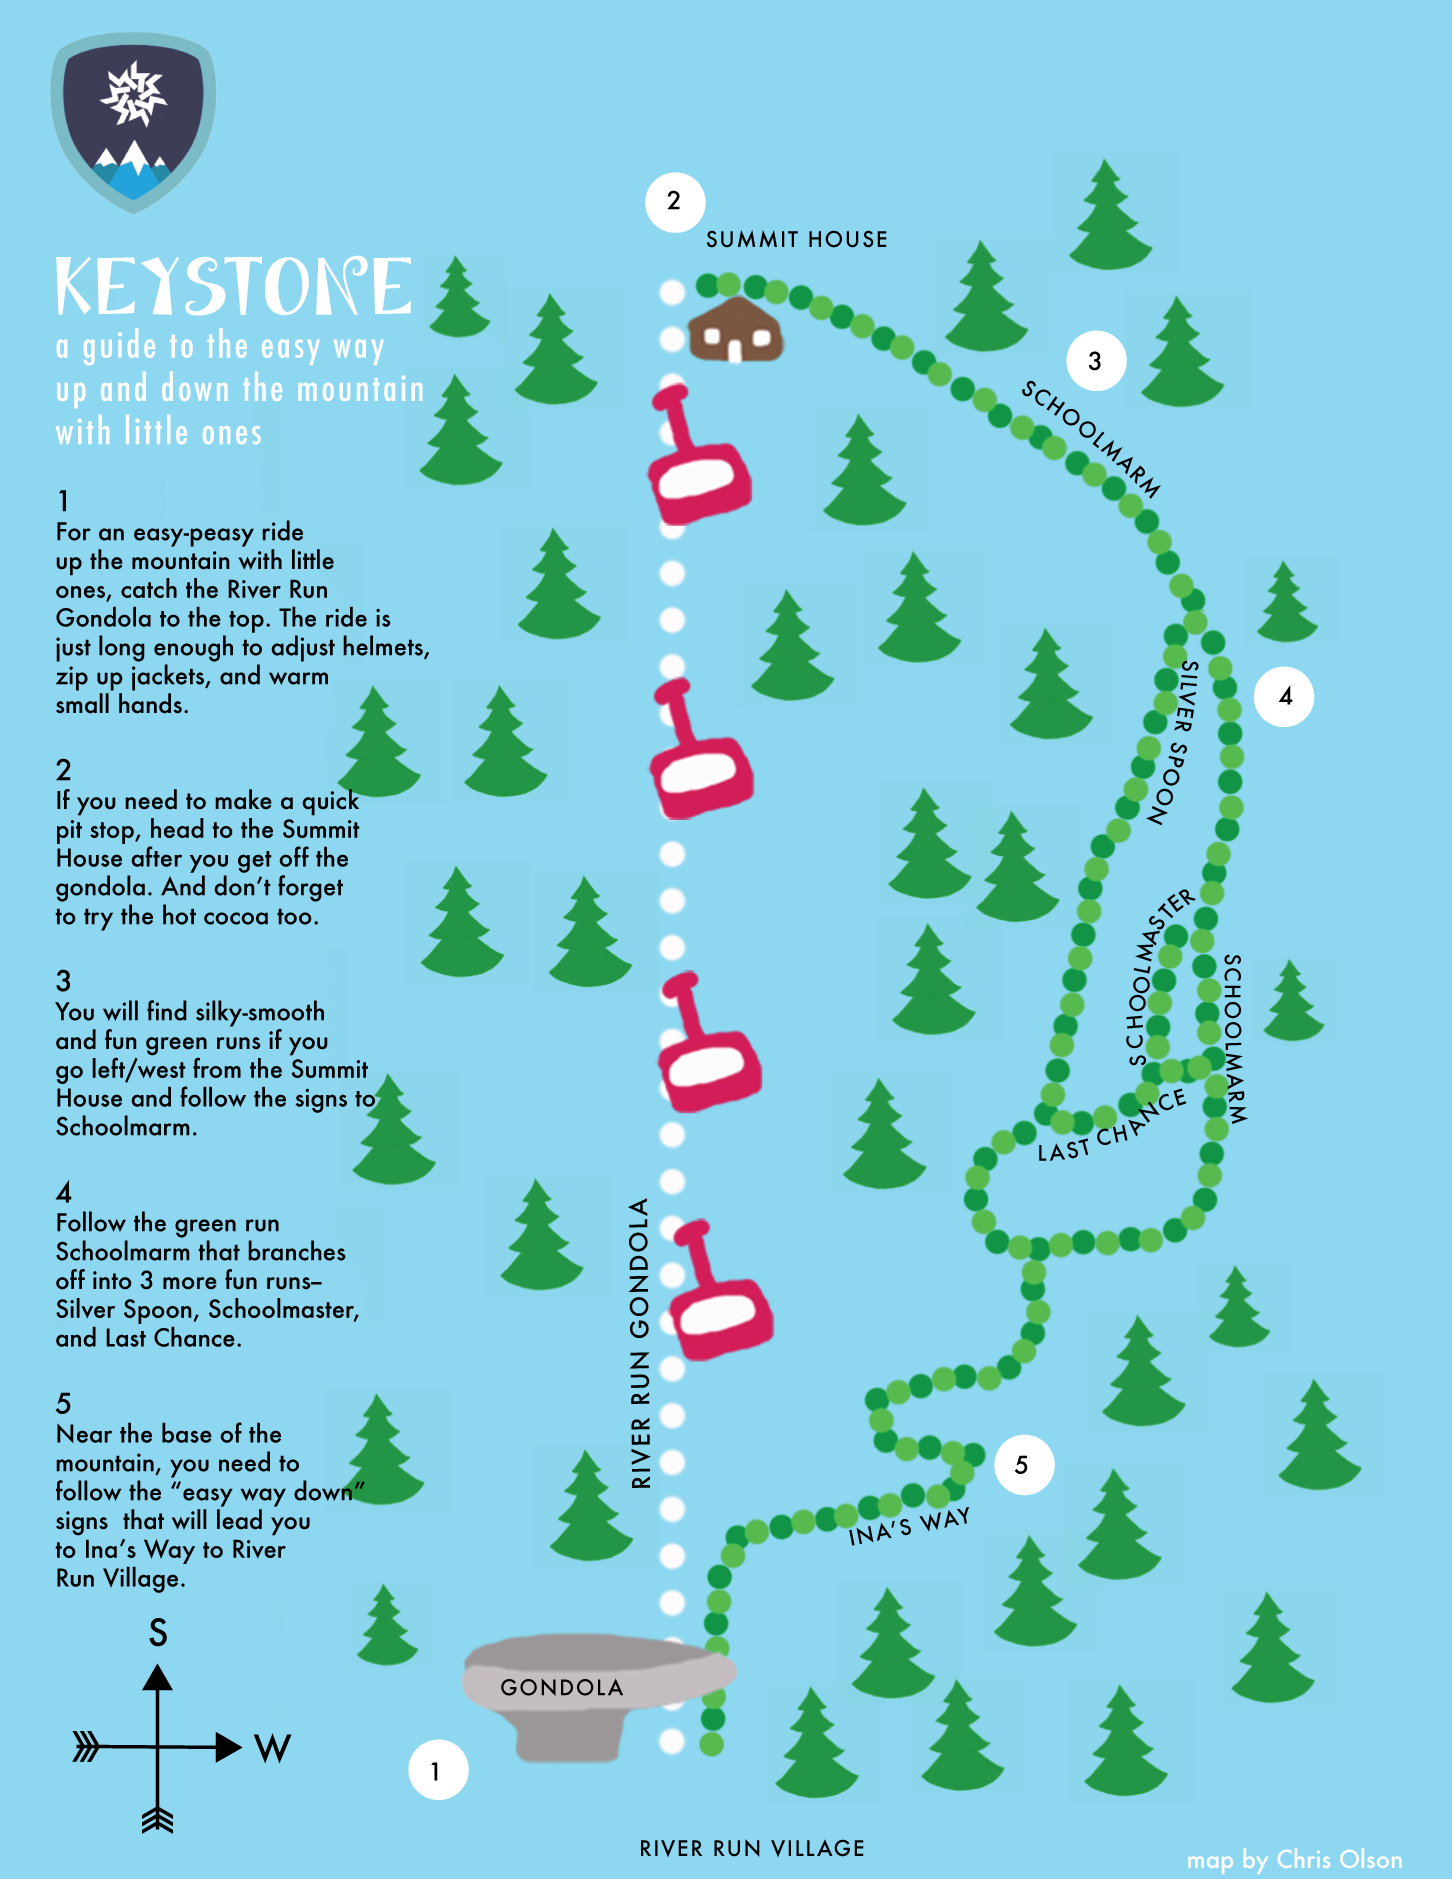 Keystone Map: Guide to the easy way up and down the mountain with little ones - image 1 - student project